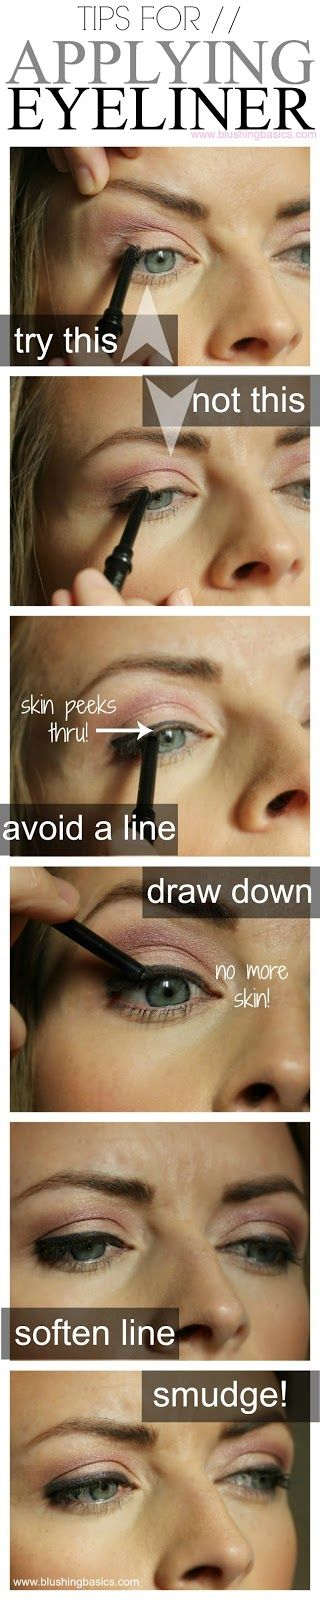 Top Ten New Years Countdown #6 How To Apply Eyeliner